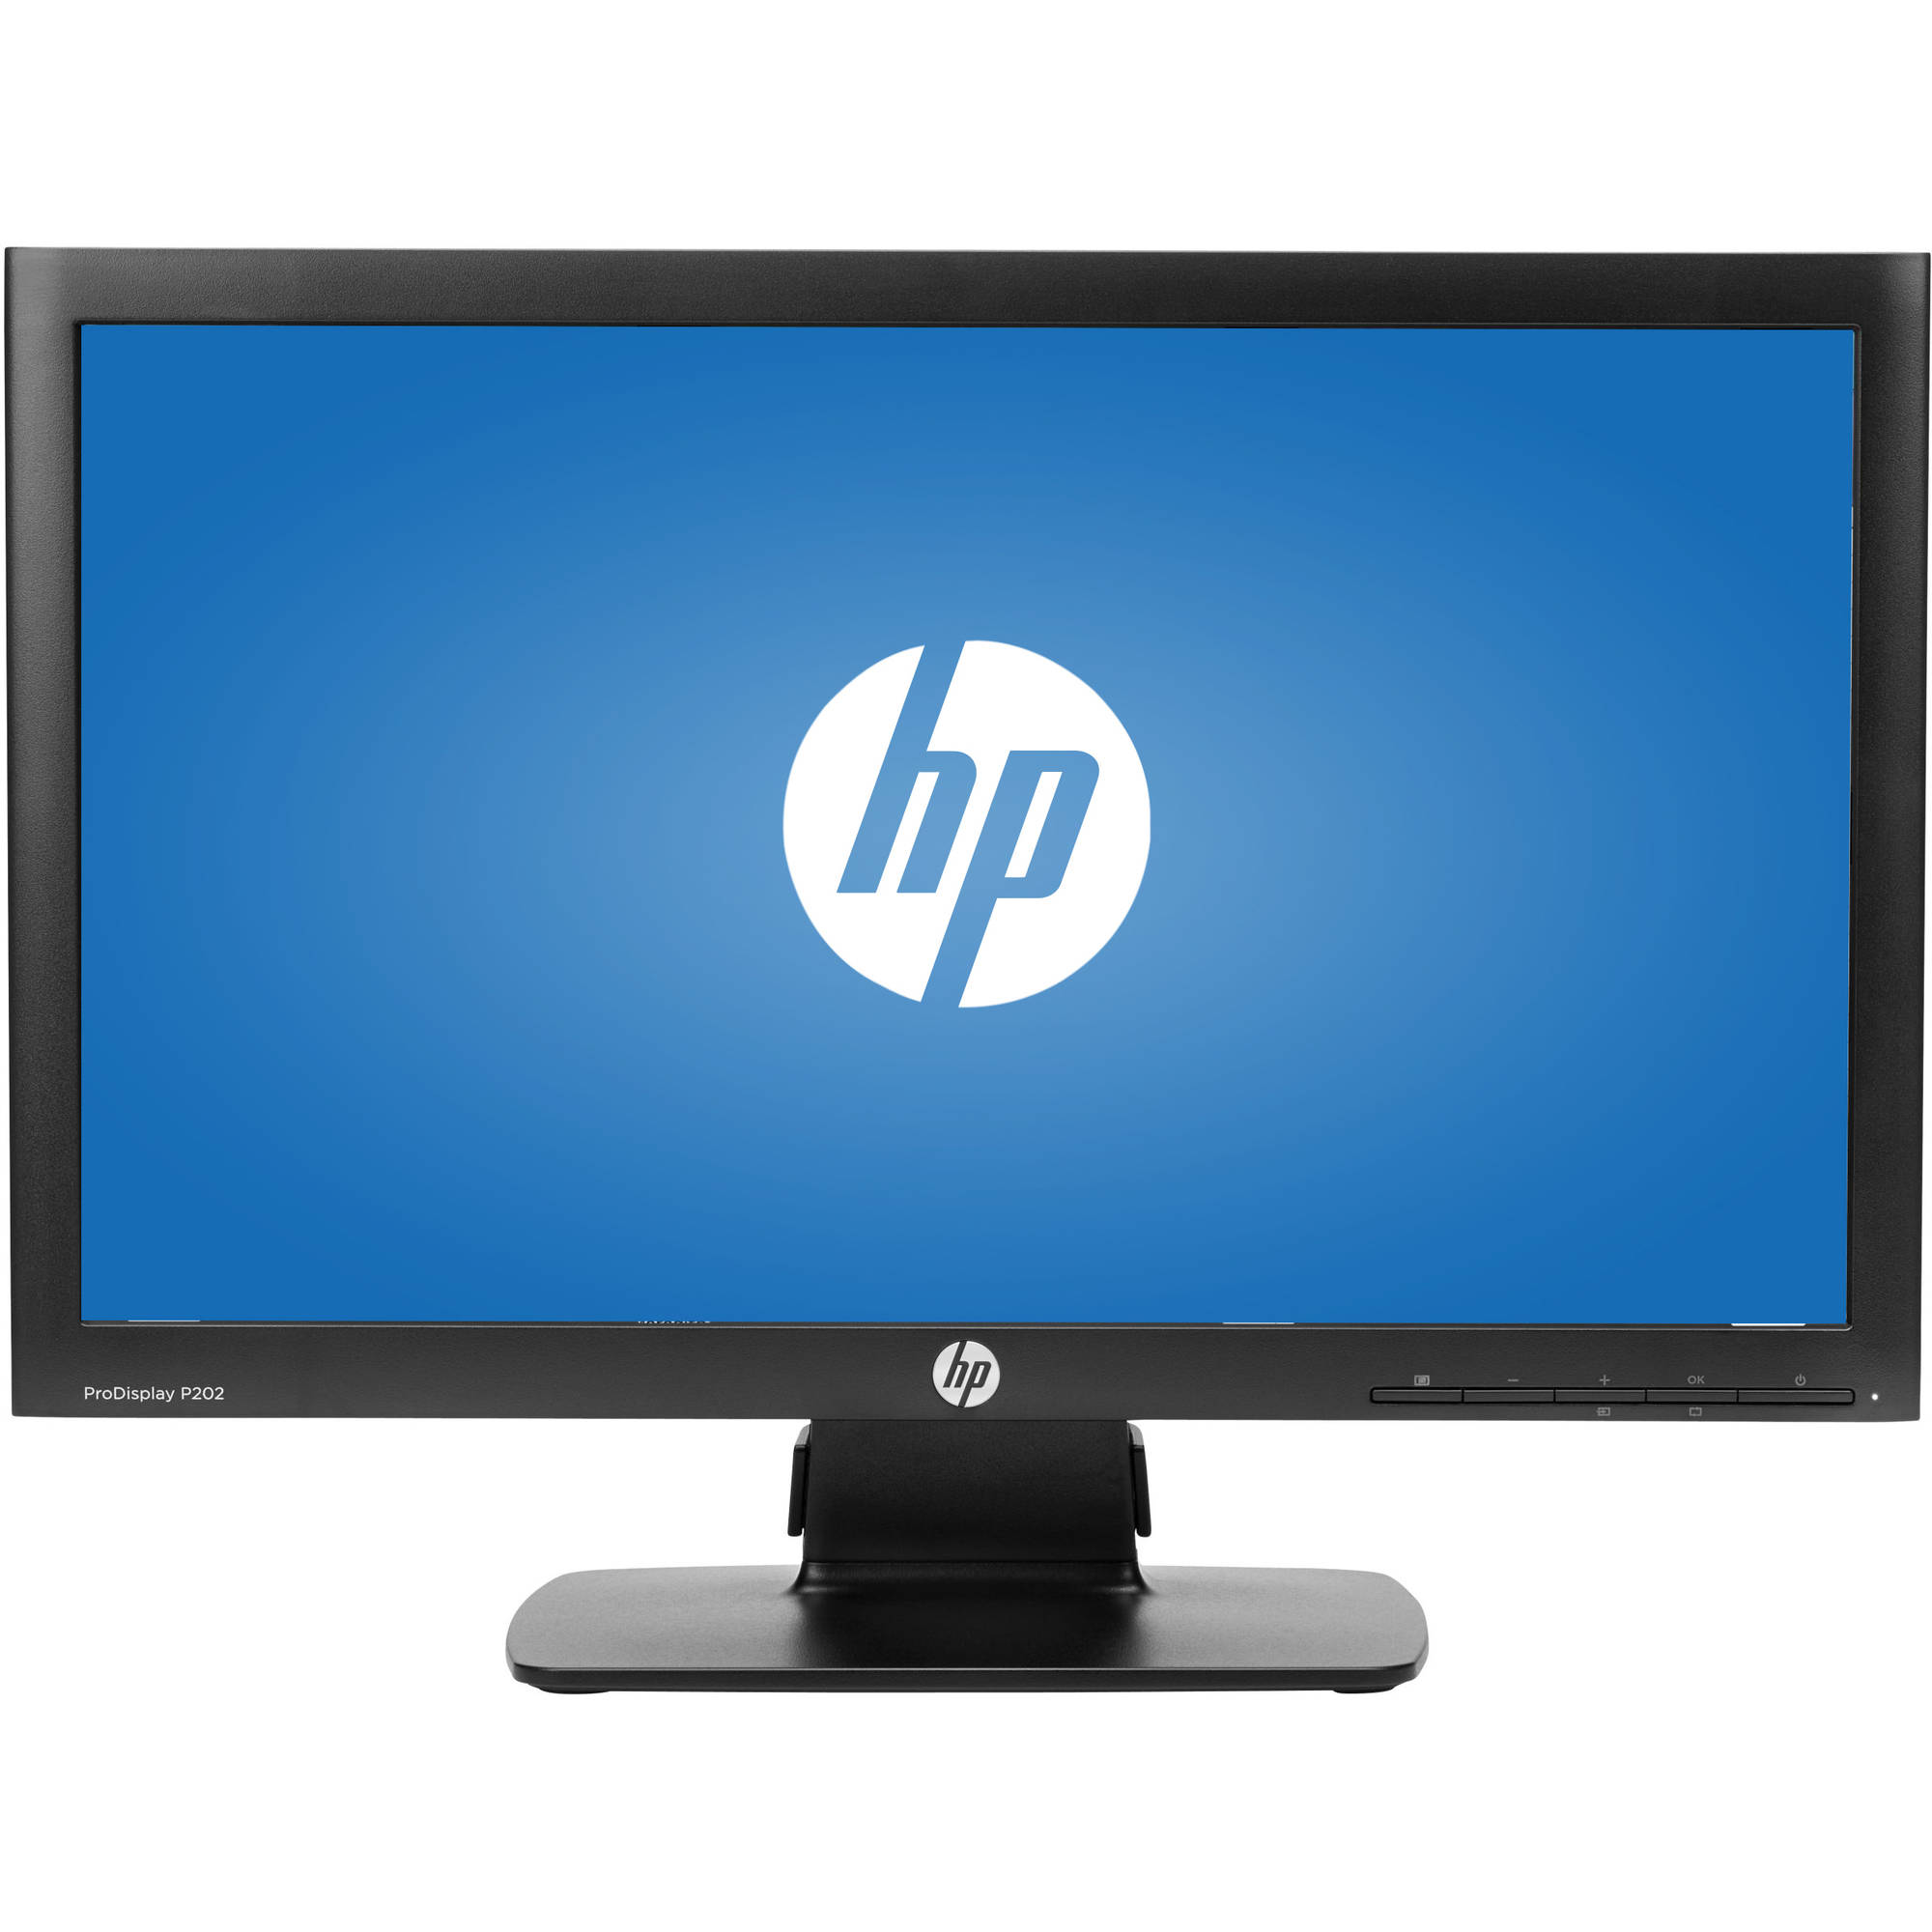 HP Business P202 20